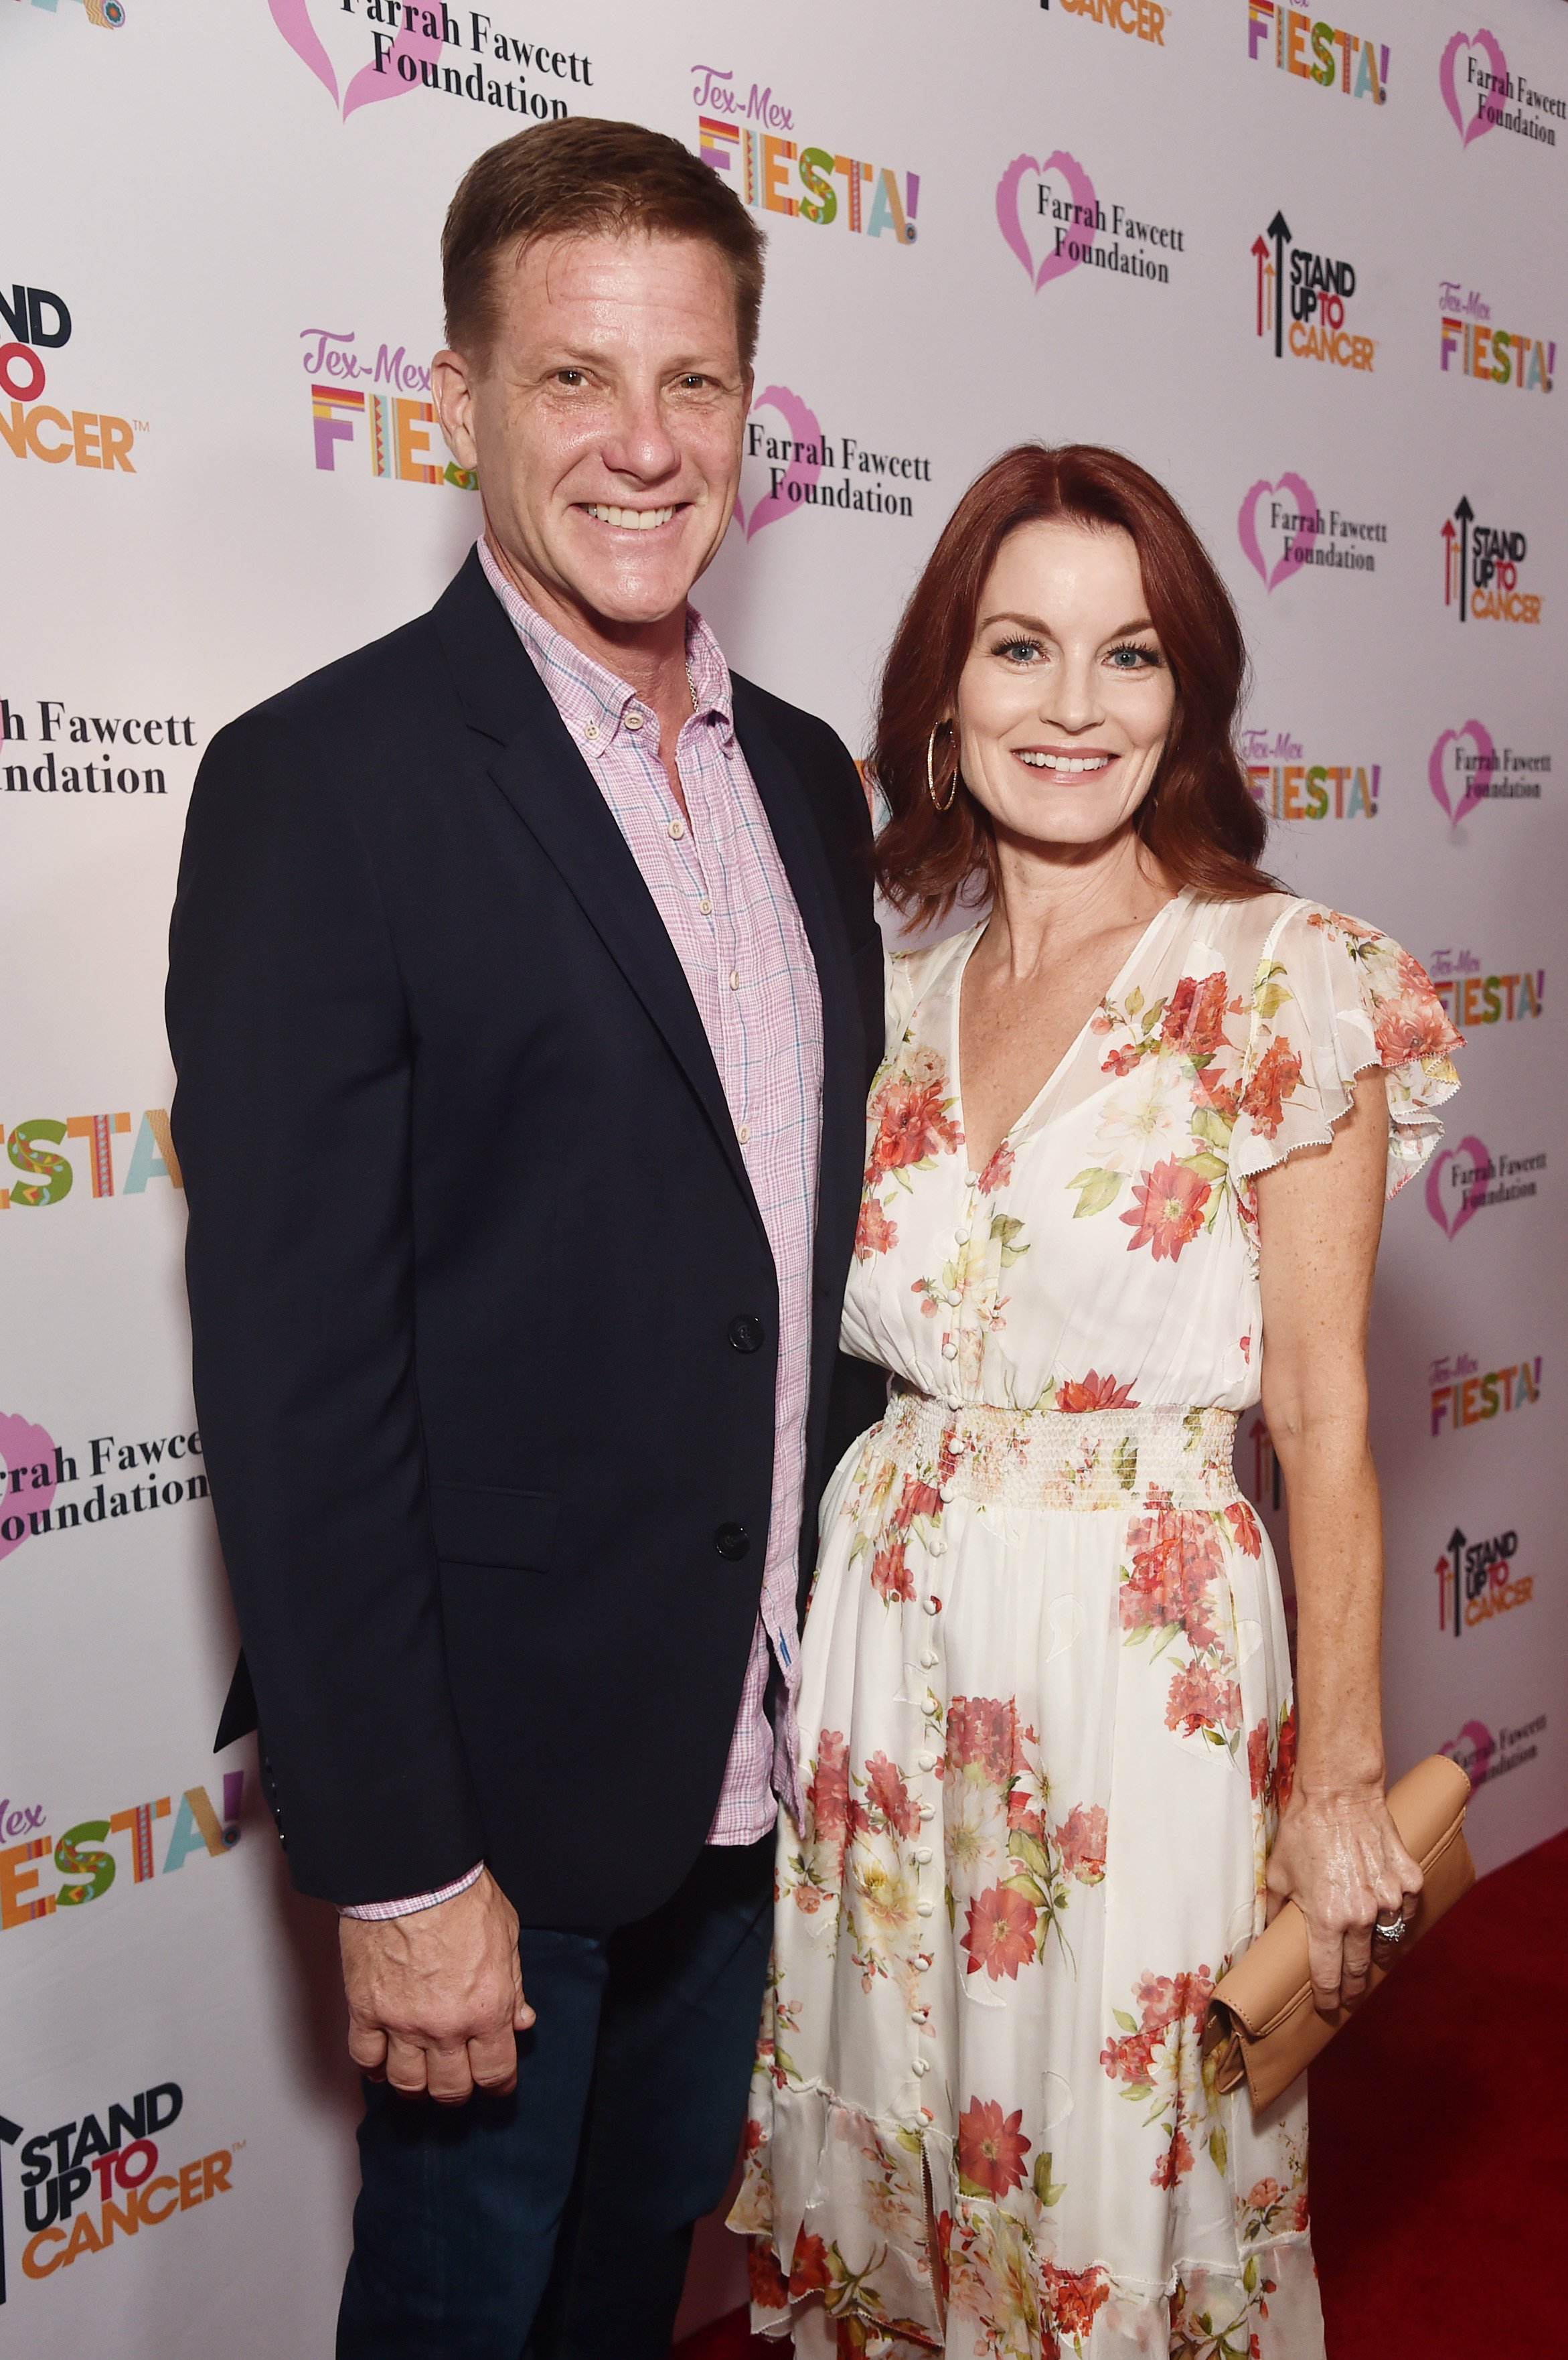 Doug Savant (L) and Laura Leighton attend the Farrah Fawcett Foundation's Tex-Mex Fiesta on September 06, 2019, in Los Angeles, California. | Source: Getty Images.